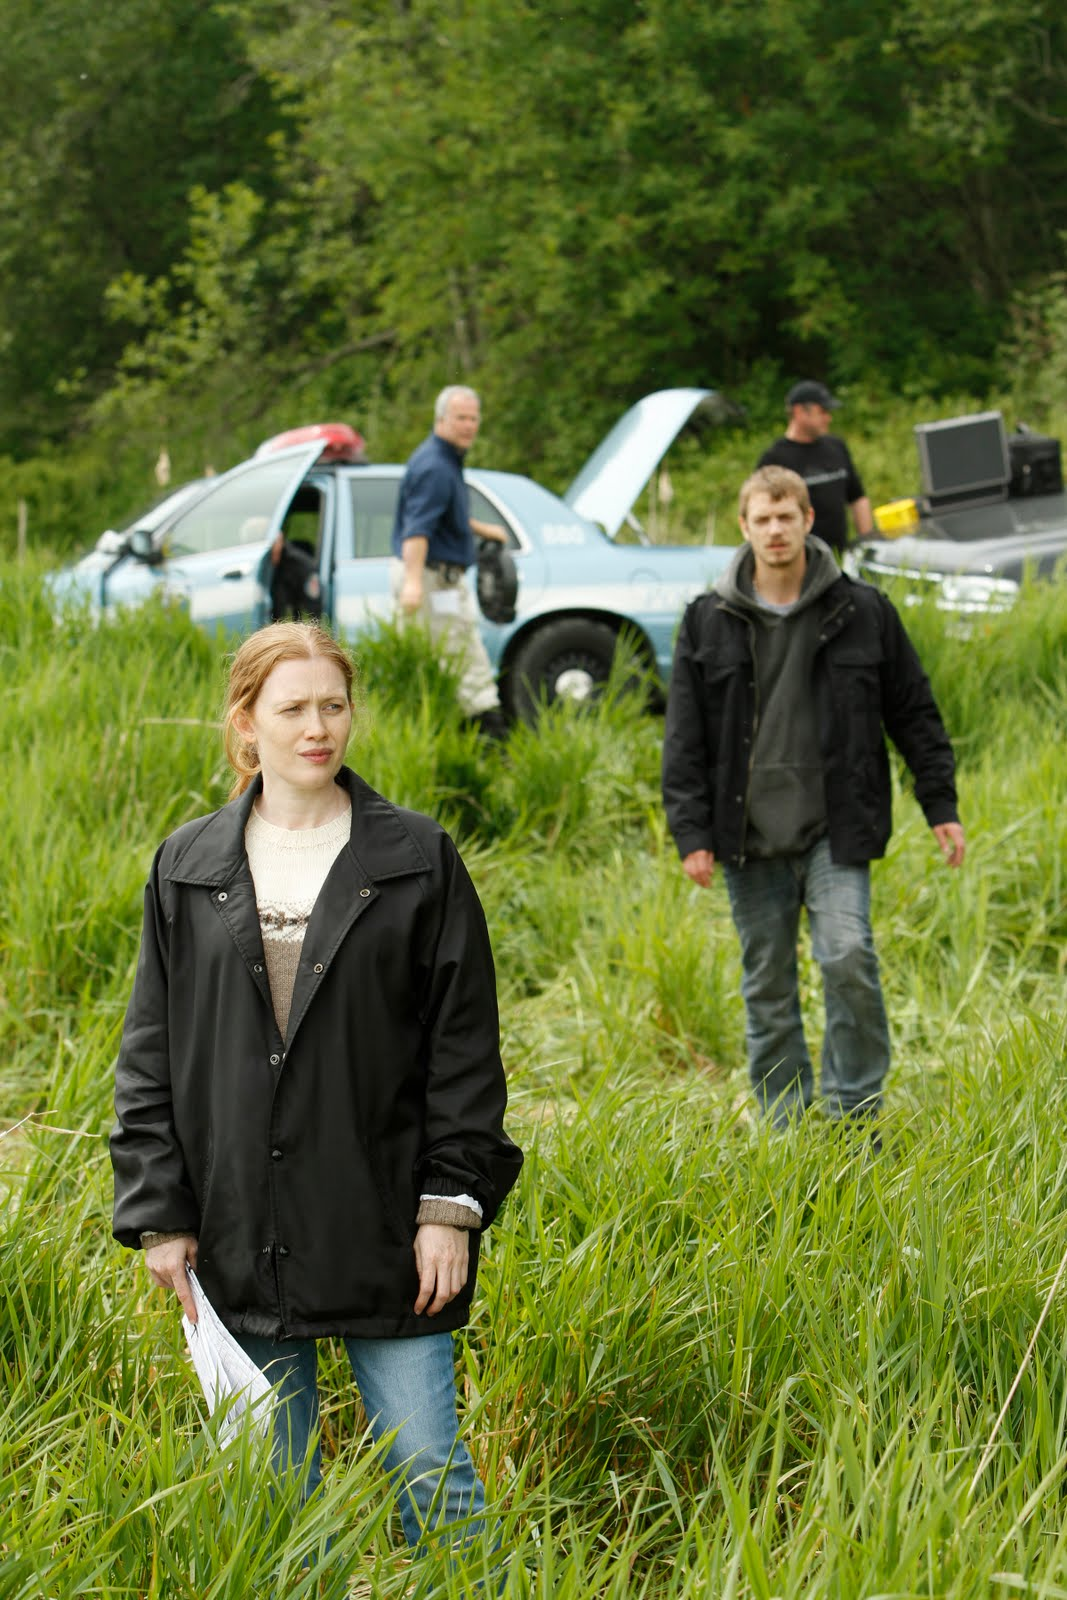 ... : Press Release: AMC Announces Launch Date for THE KILLING